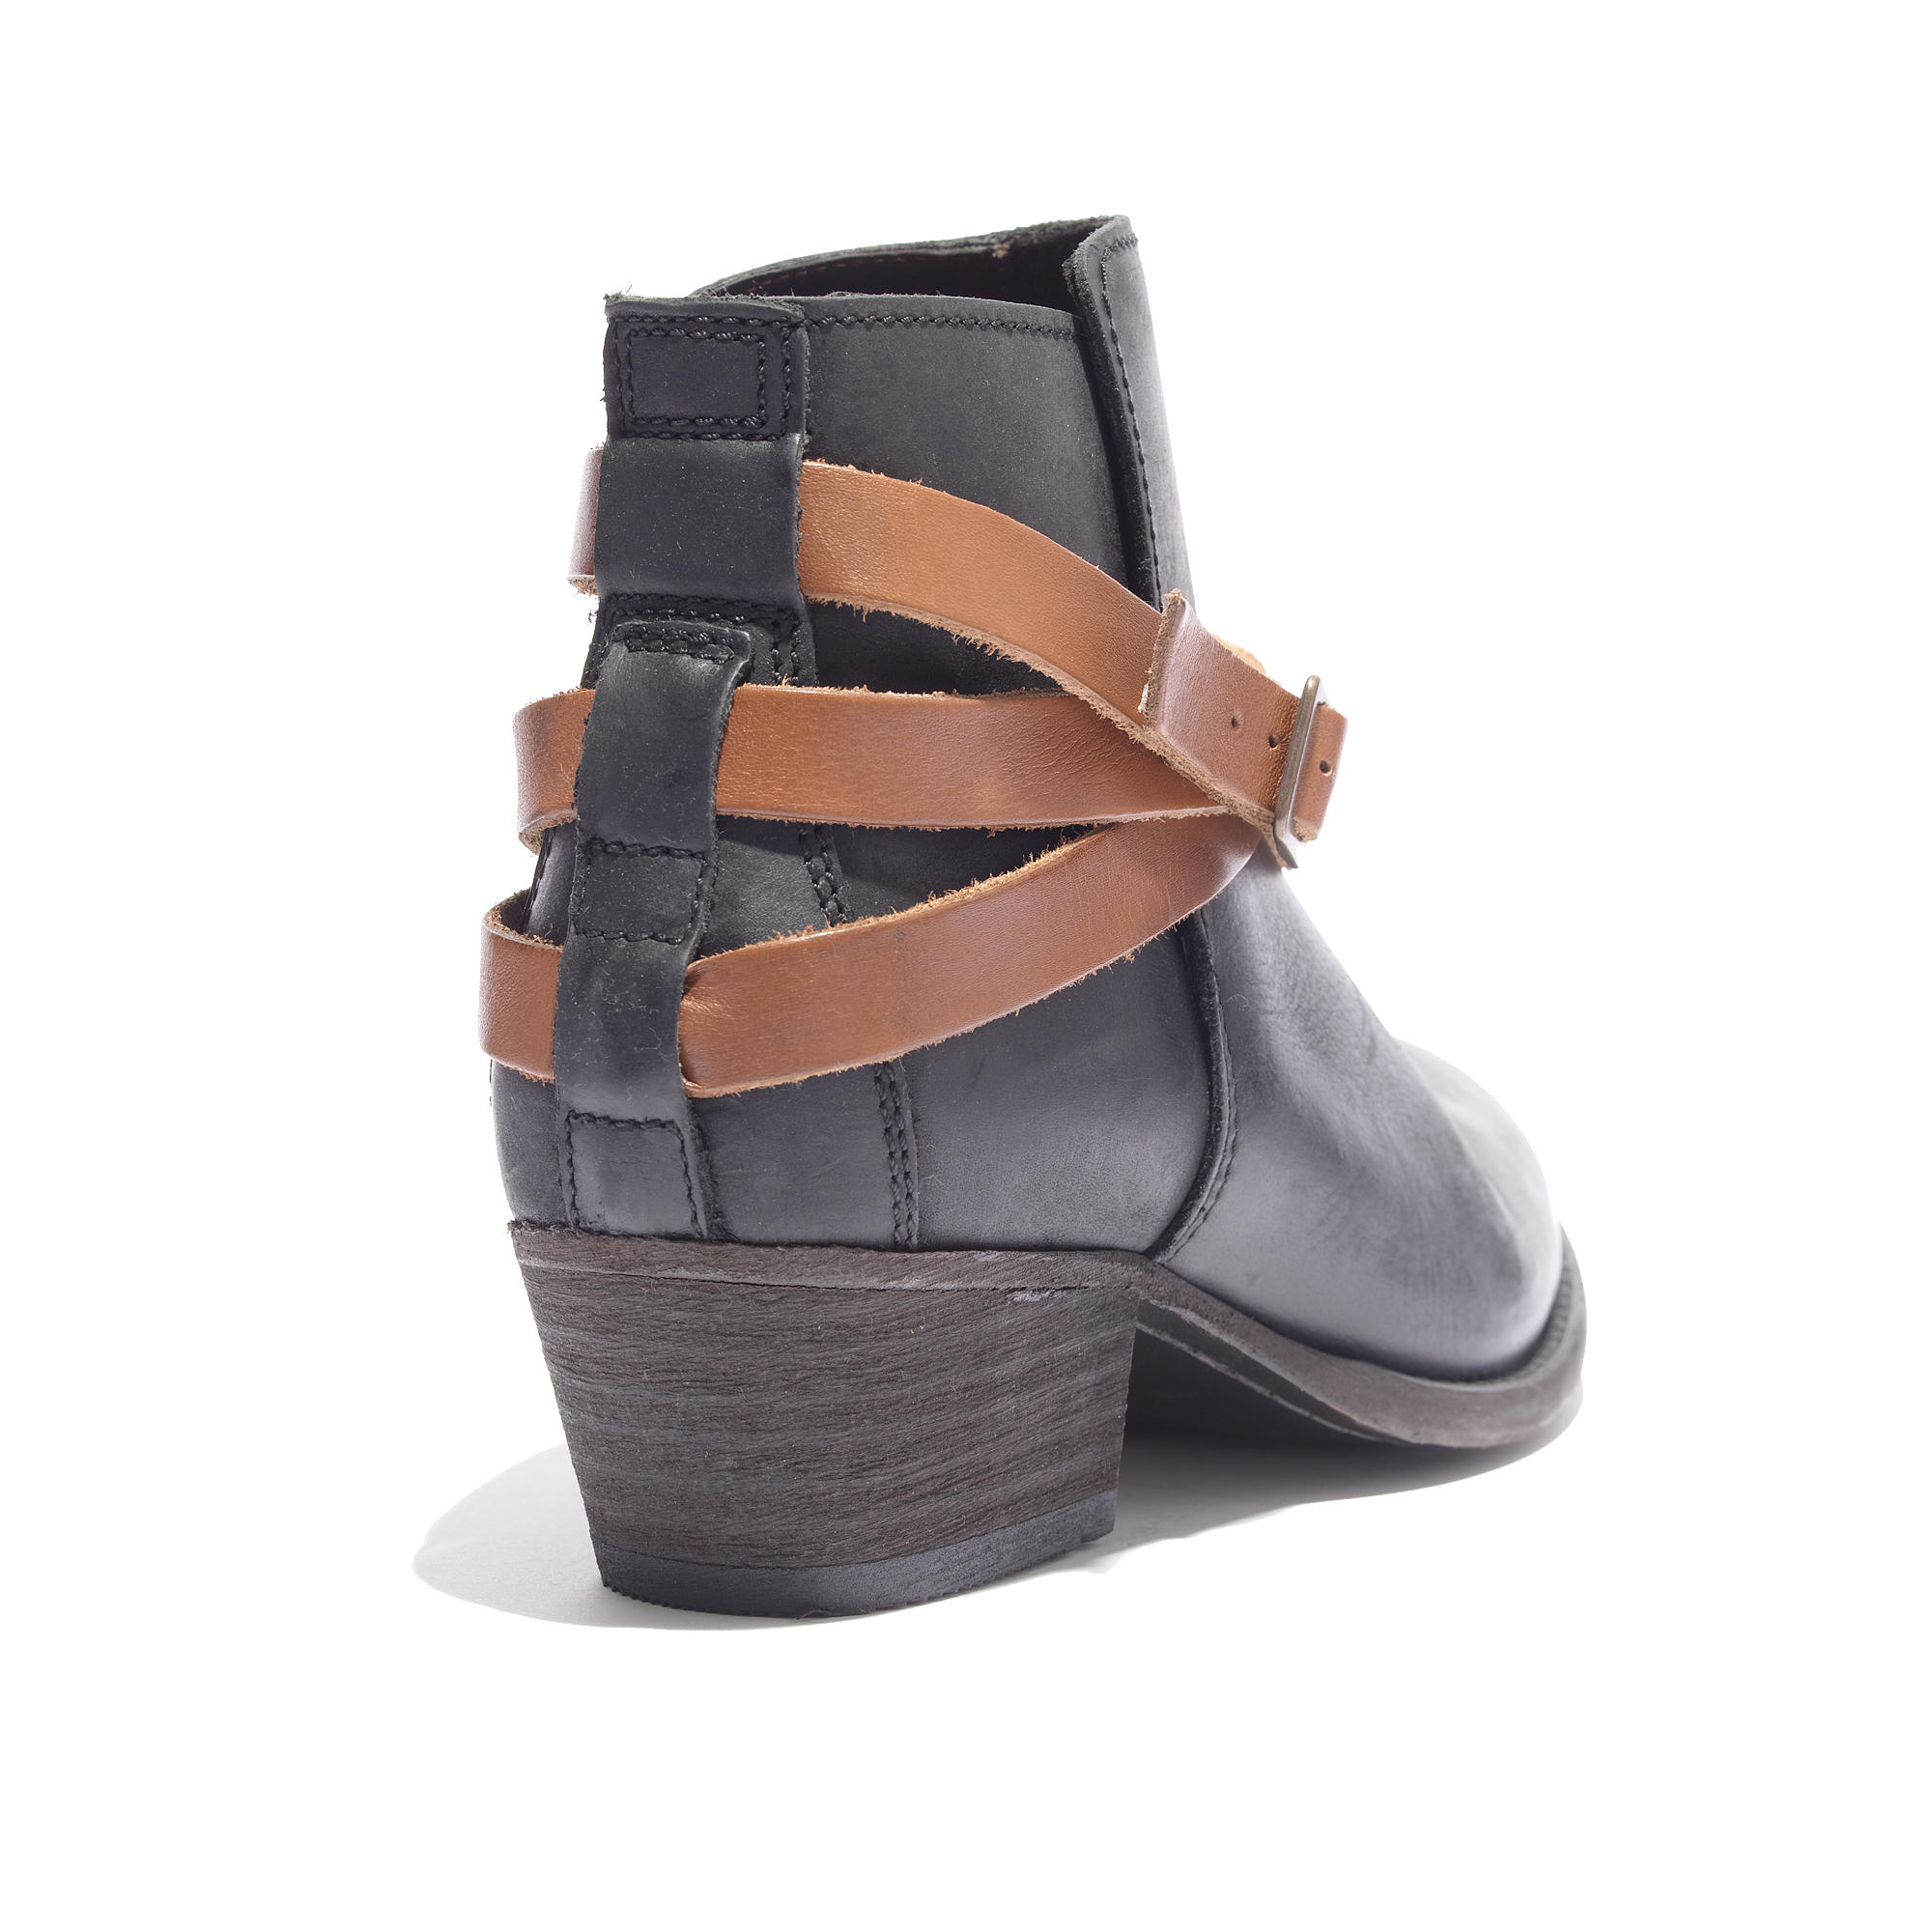 H by Hudson™ Horrigan Boots : boots   Madewell